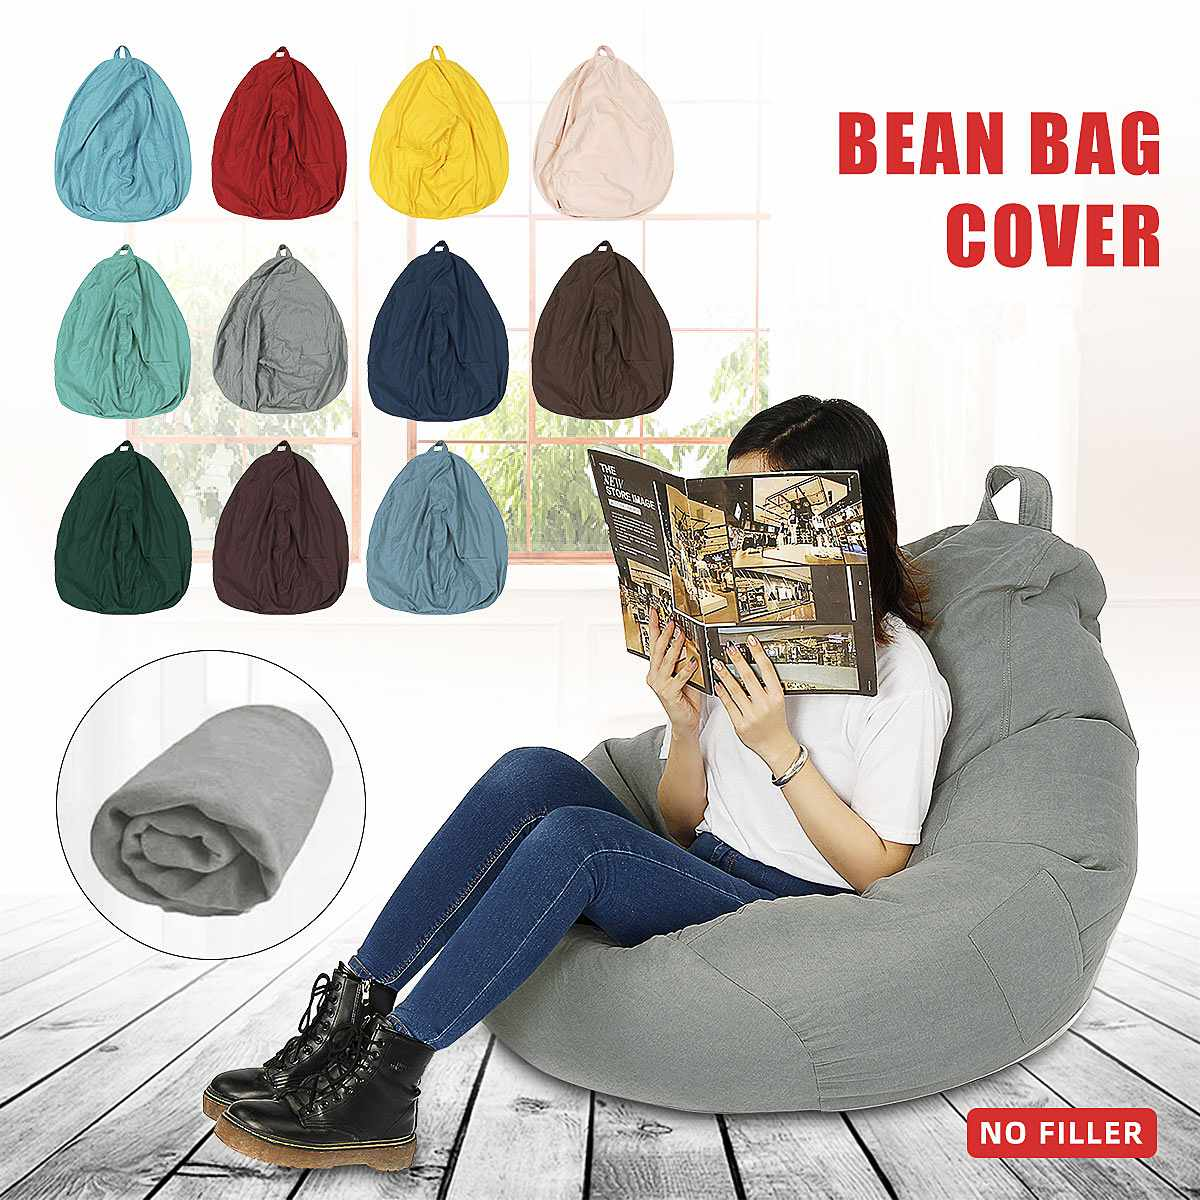 70x70cm Lazy BeanBag Sofas Cover Chairs without Filler Linen Cloth Lounger Seat Bean Bag Puff Couch Tatami Living Room Furniture 1